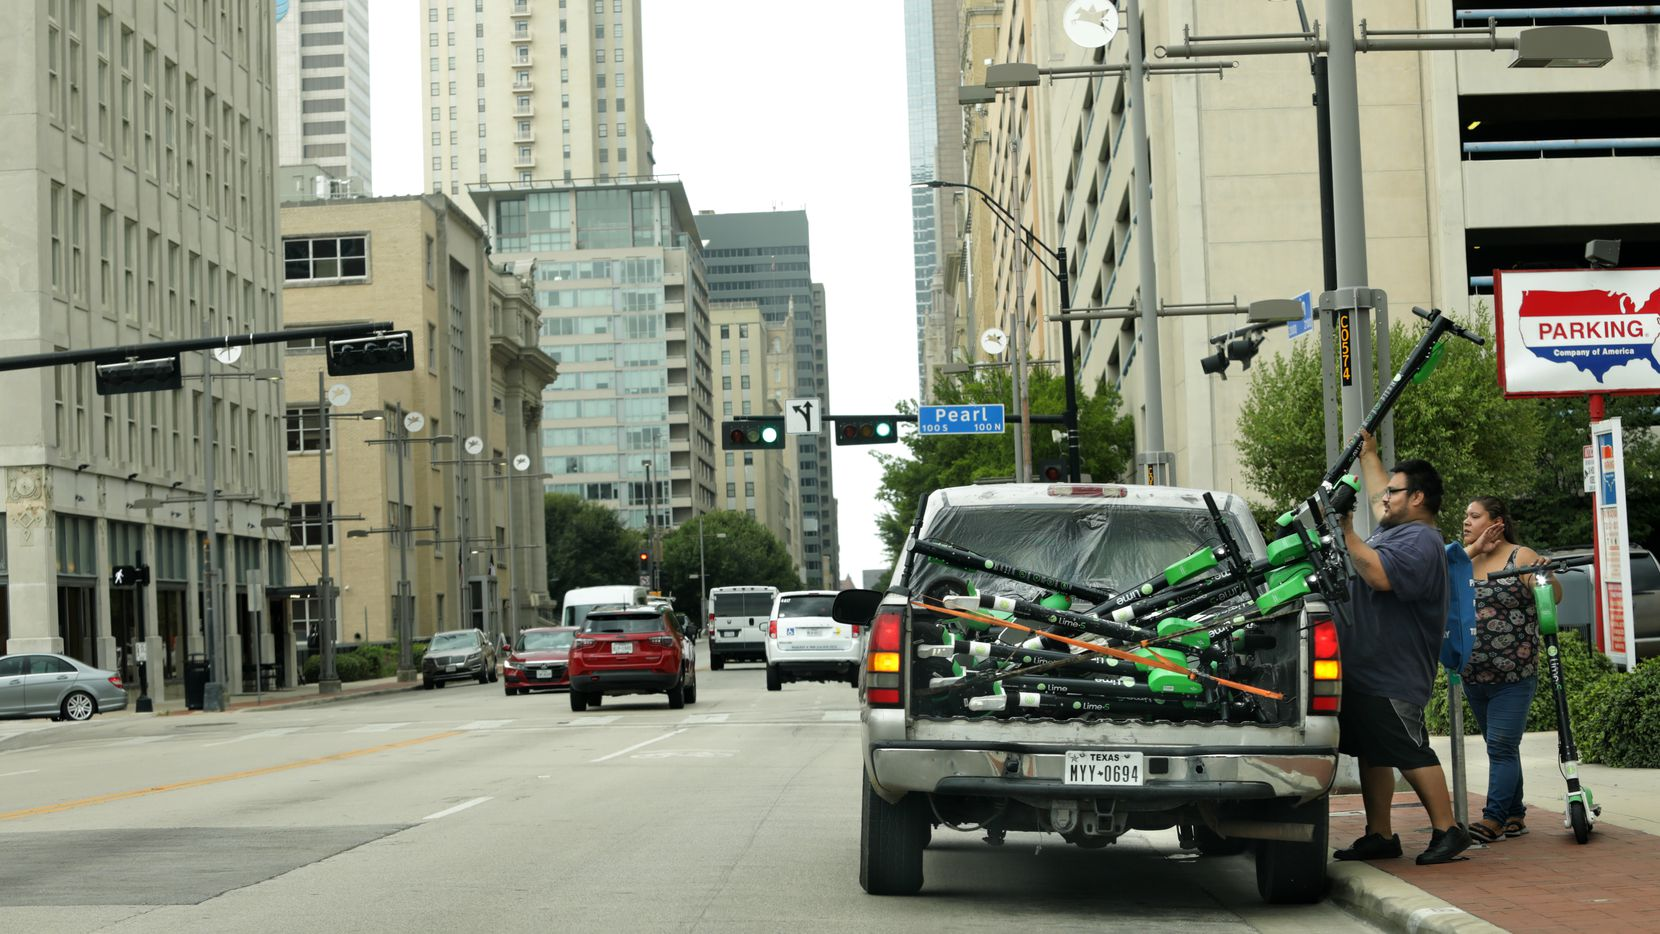 Rental scooters get loaded into a truck in Dallas, Texas, on Sep. 1, 2020. (Jason Janik/Special Contributor)